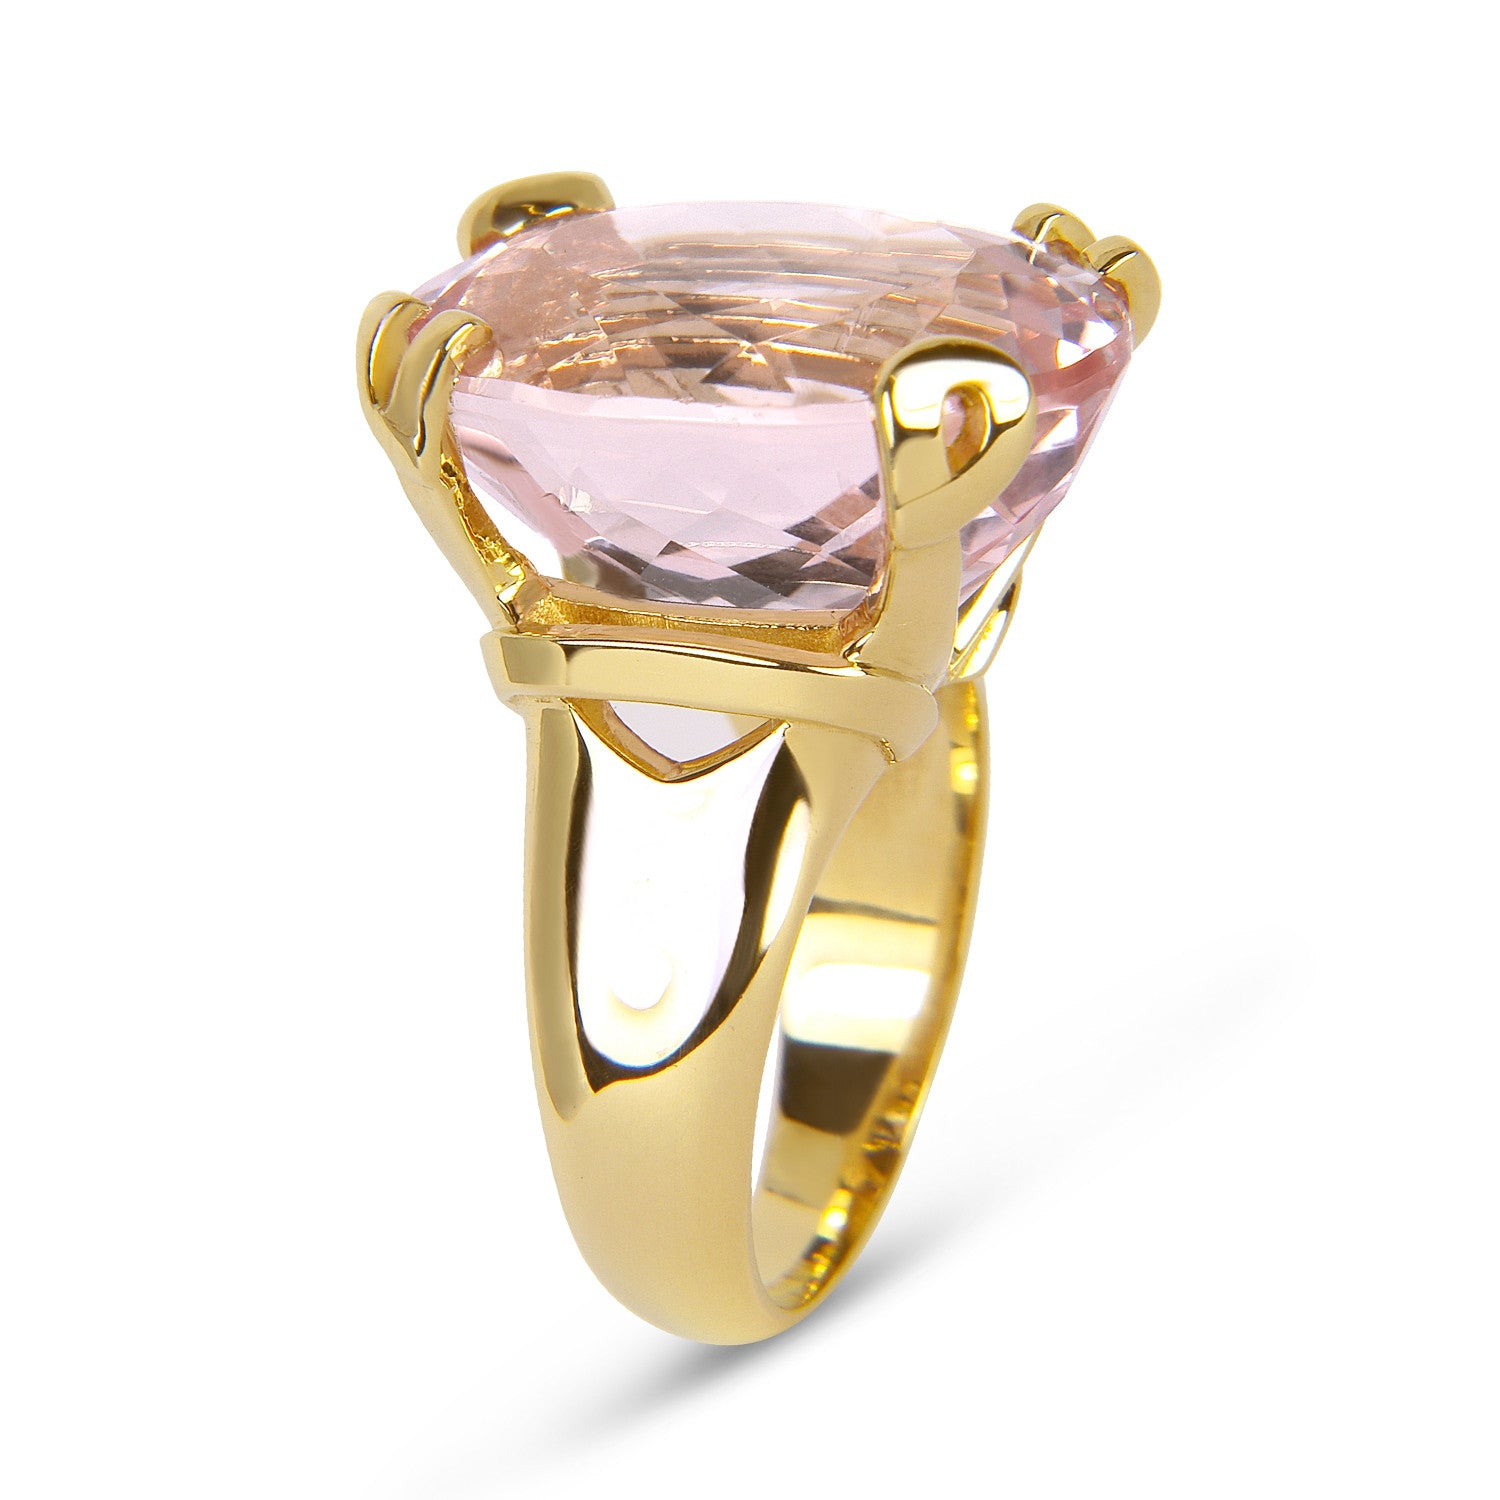 Bespoke Jewellery - Morhanite 18ct gold ring top - Arabel Lebrusan